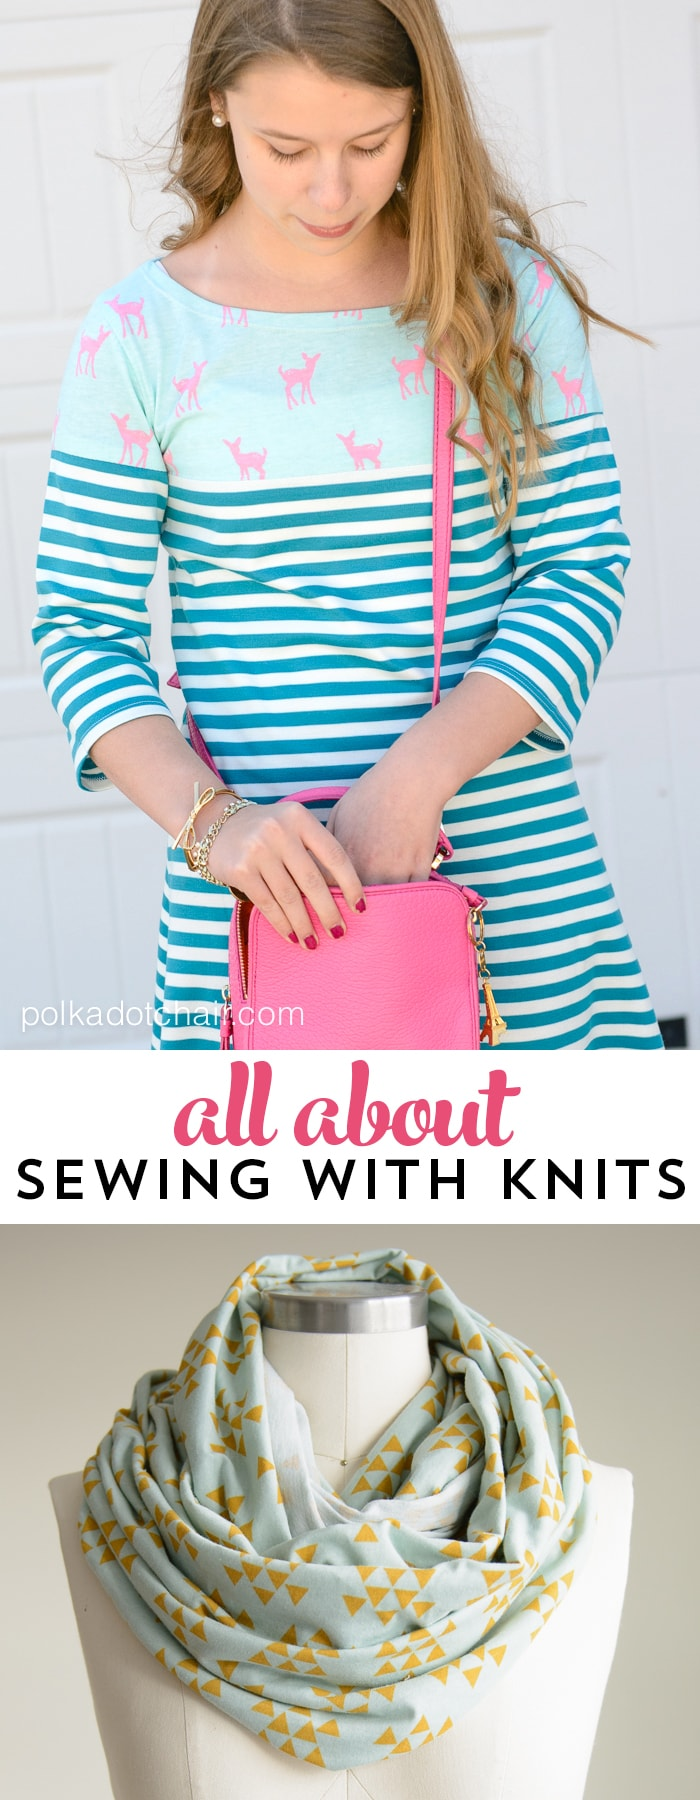 5 project to try out when sewing with knit fabrics, along with knit sewing tips and techniques